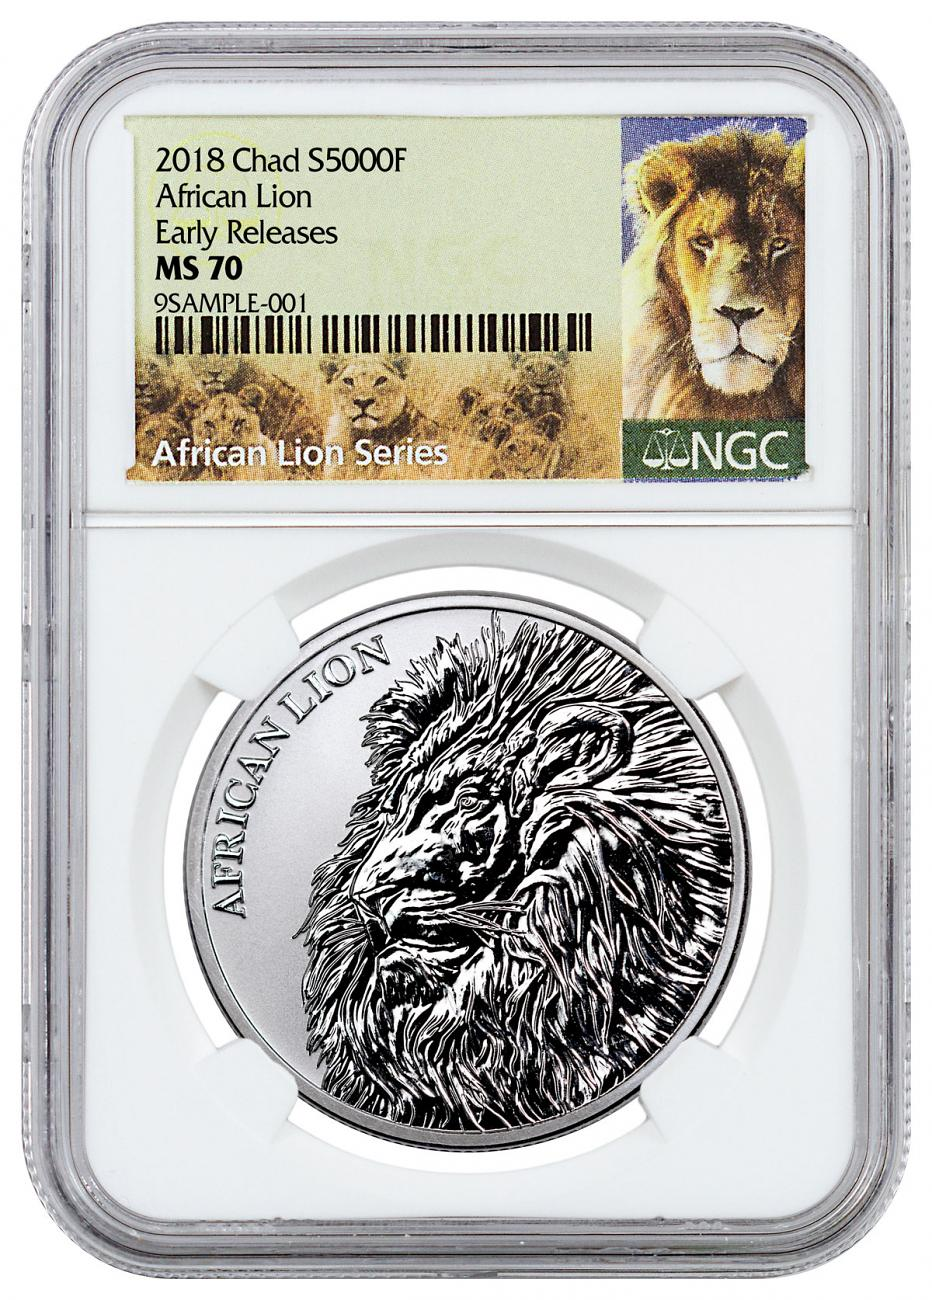 2018 Republic of Chad African Lion 1 oz Silver Fr5,000 Coin NGC MS70 ER Exclusive Lion Label